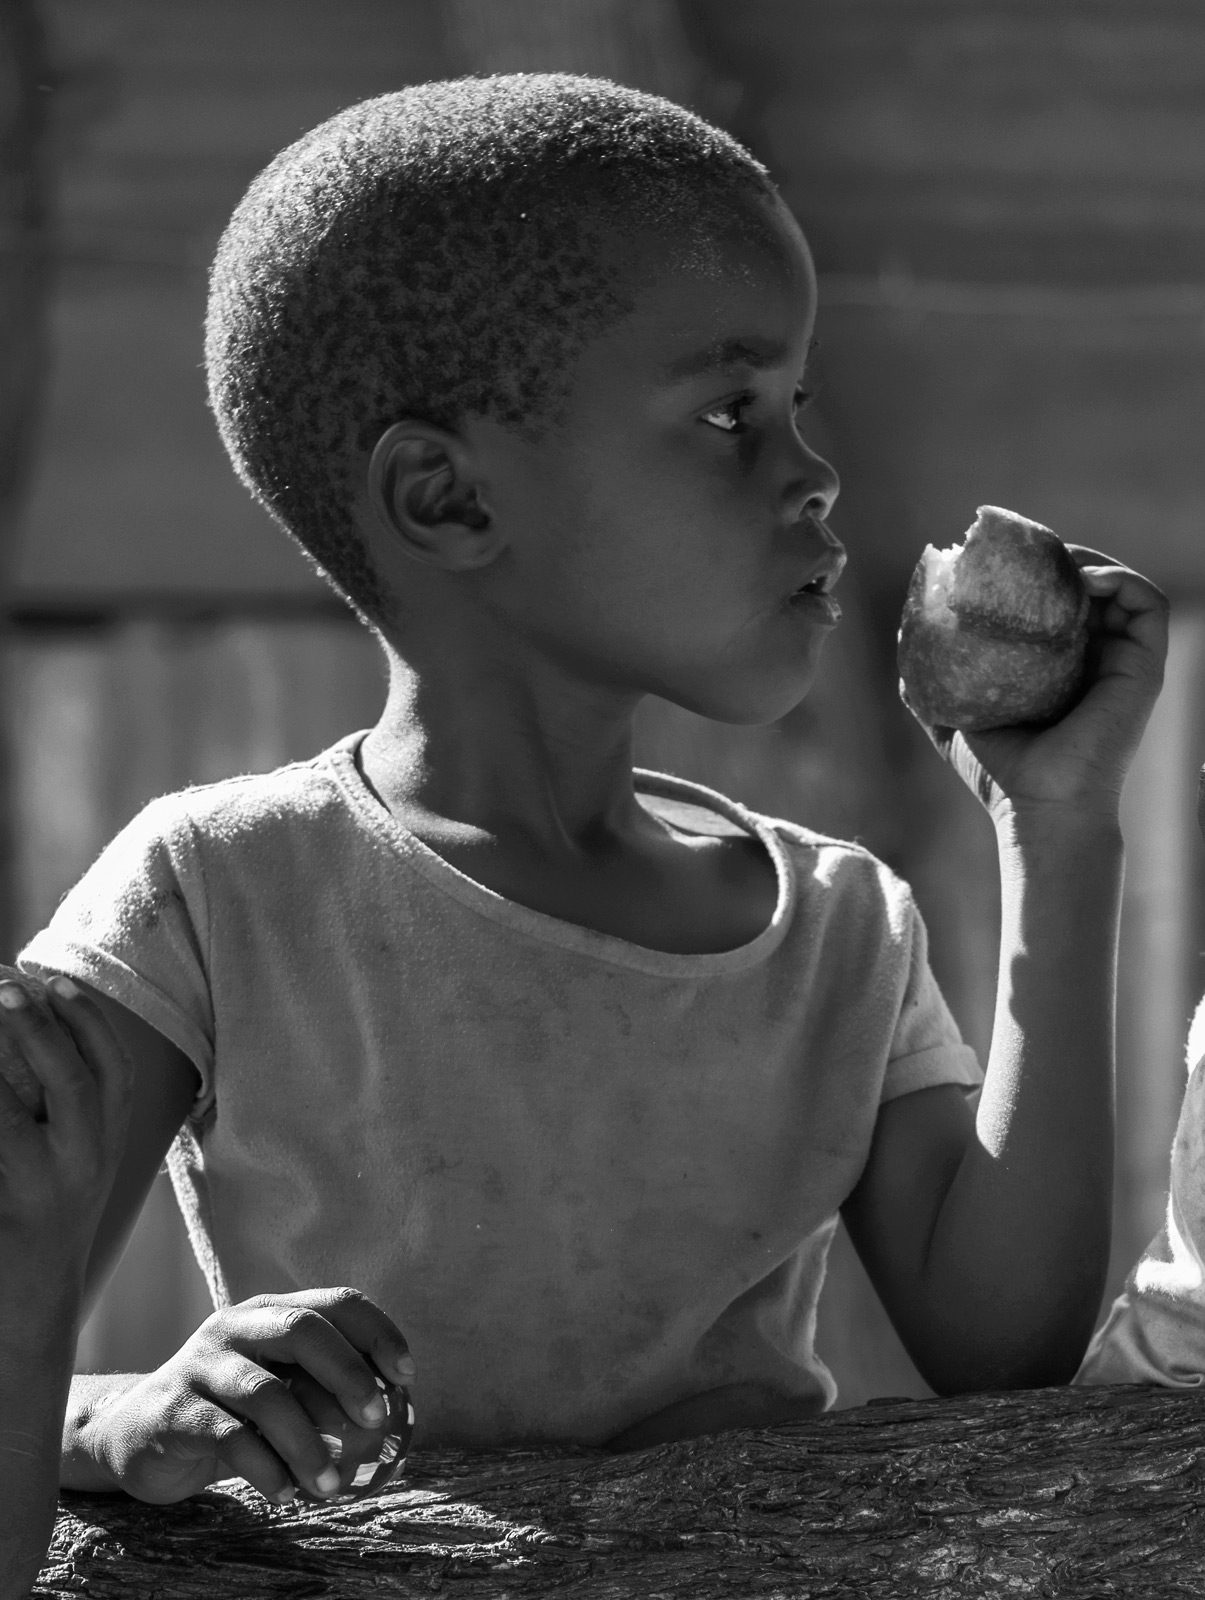 Gorgeous sharp African sunlight rim lights this wee girl munching on a deep fried doughnut outside her tin shack home. ...